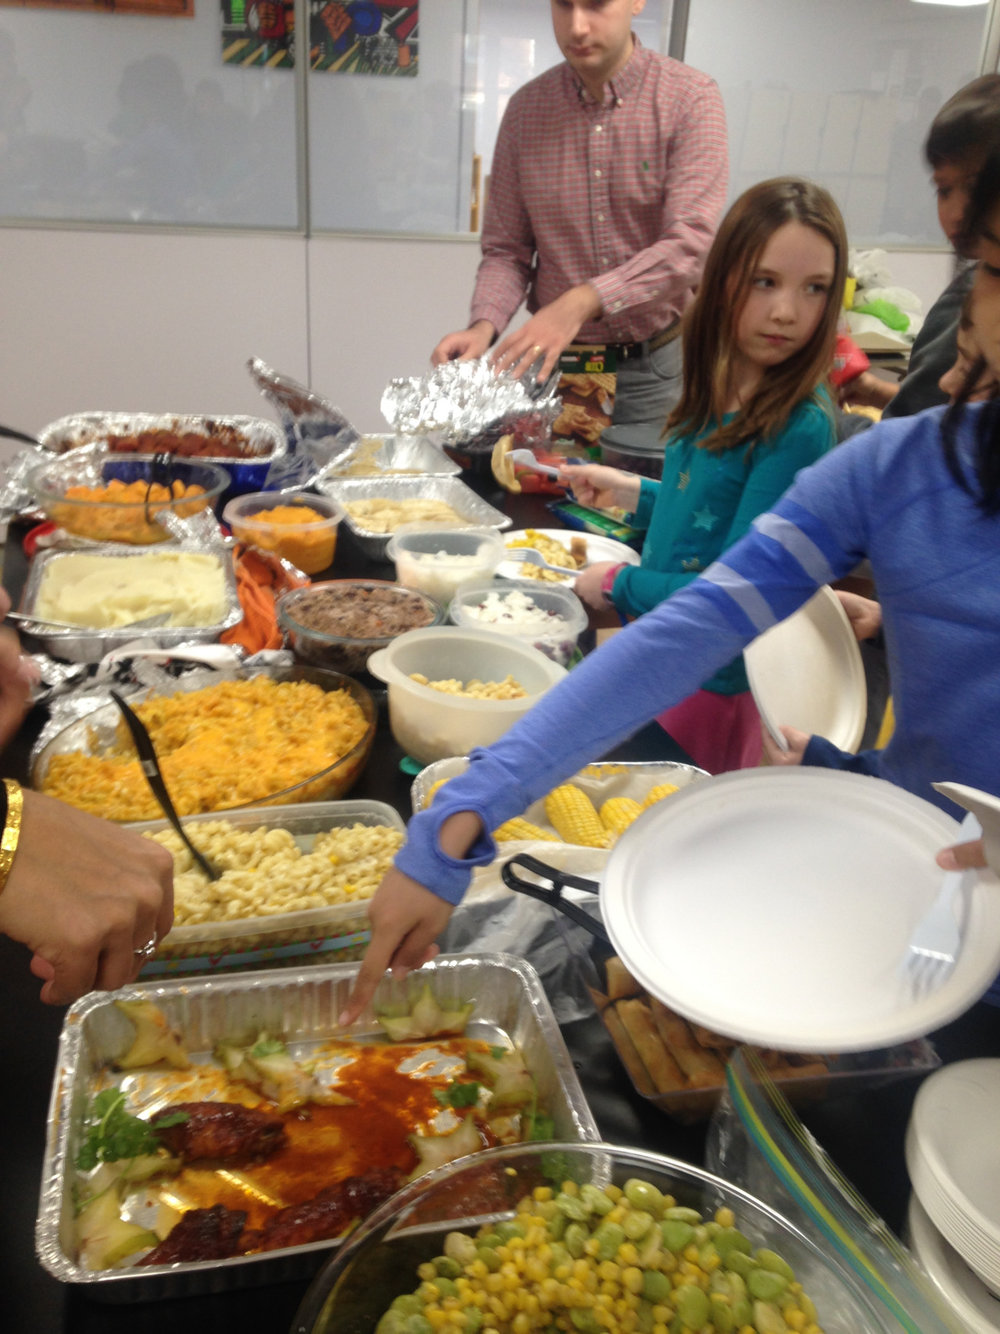 The Upper Elementary and Middle School students enjoyed a wonderful Thanksgiving Feast which featured contributions from cuisines around the world.